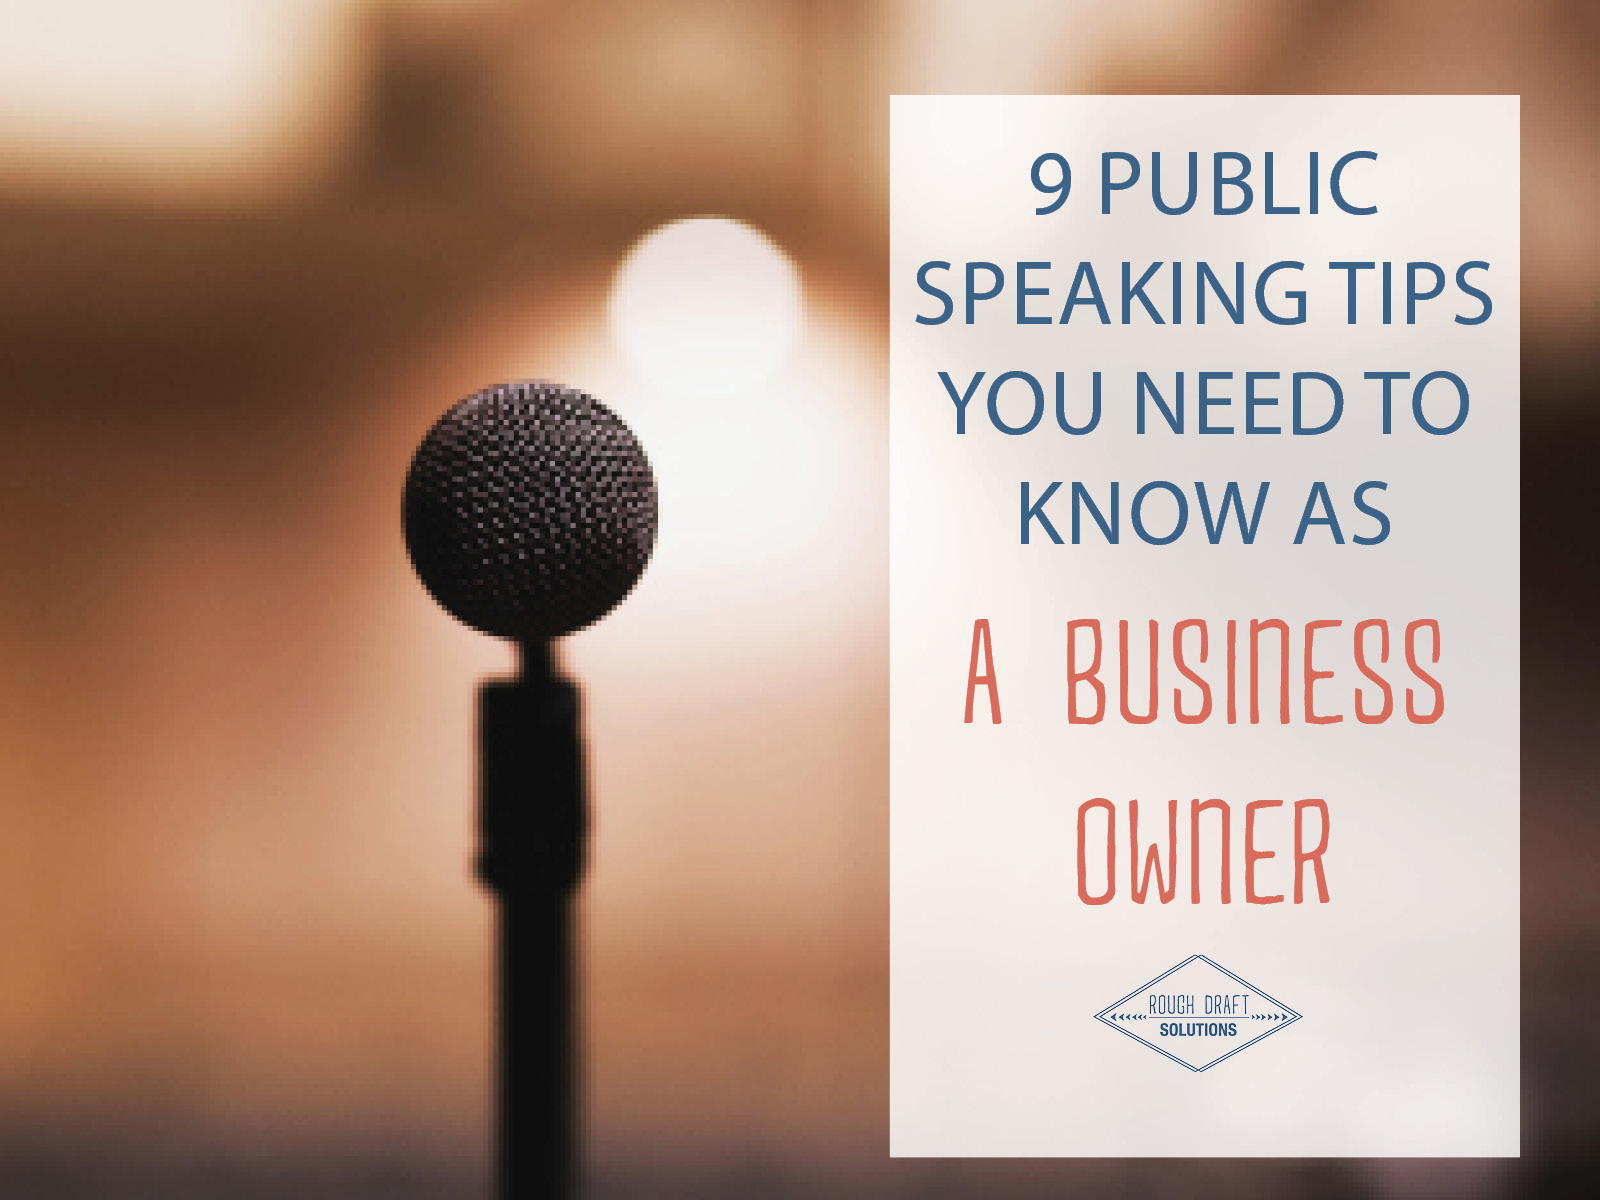 Public Speech Tips 9 Public Speaking Tips You Need To Know As A Business Owner